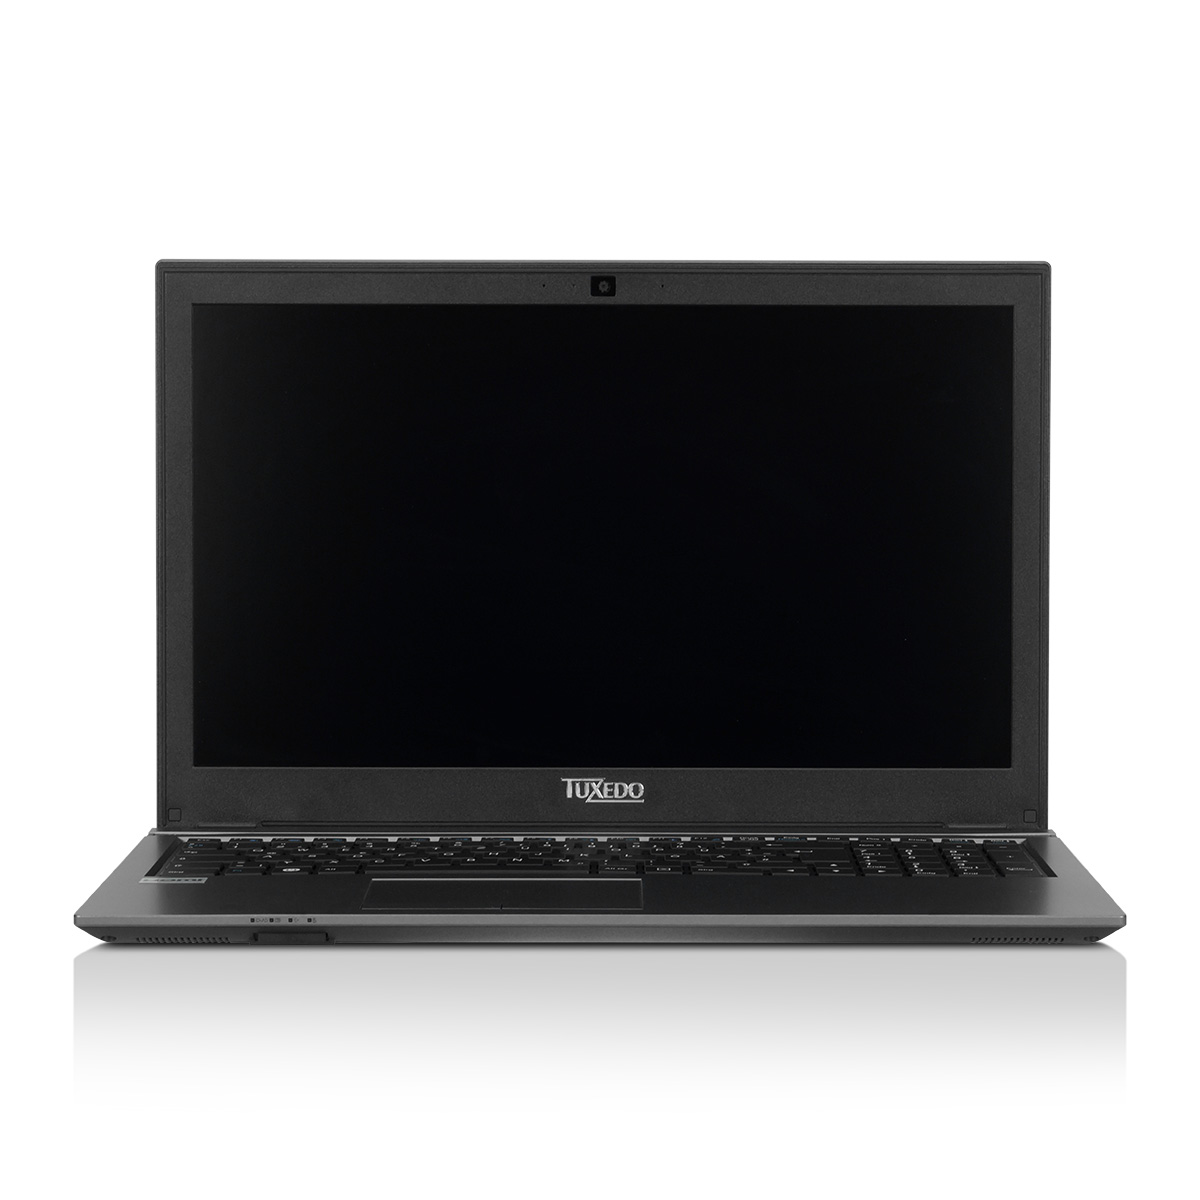 "TUXEDO Book BM1707 - 17,3"" matt Full-HD IPS + bis Intel Core i7 Quad-Core Energiespar-CPU + bis drei HDD/SSD + bis 32GB RAM + bis 10h Akku + bel. Tastatur + DVD o. Blu-Ray + LTE opt."